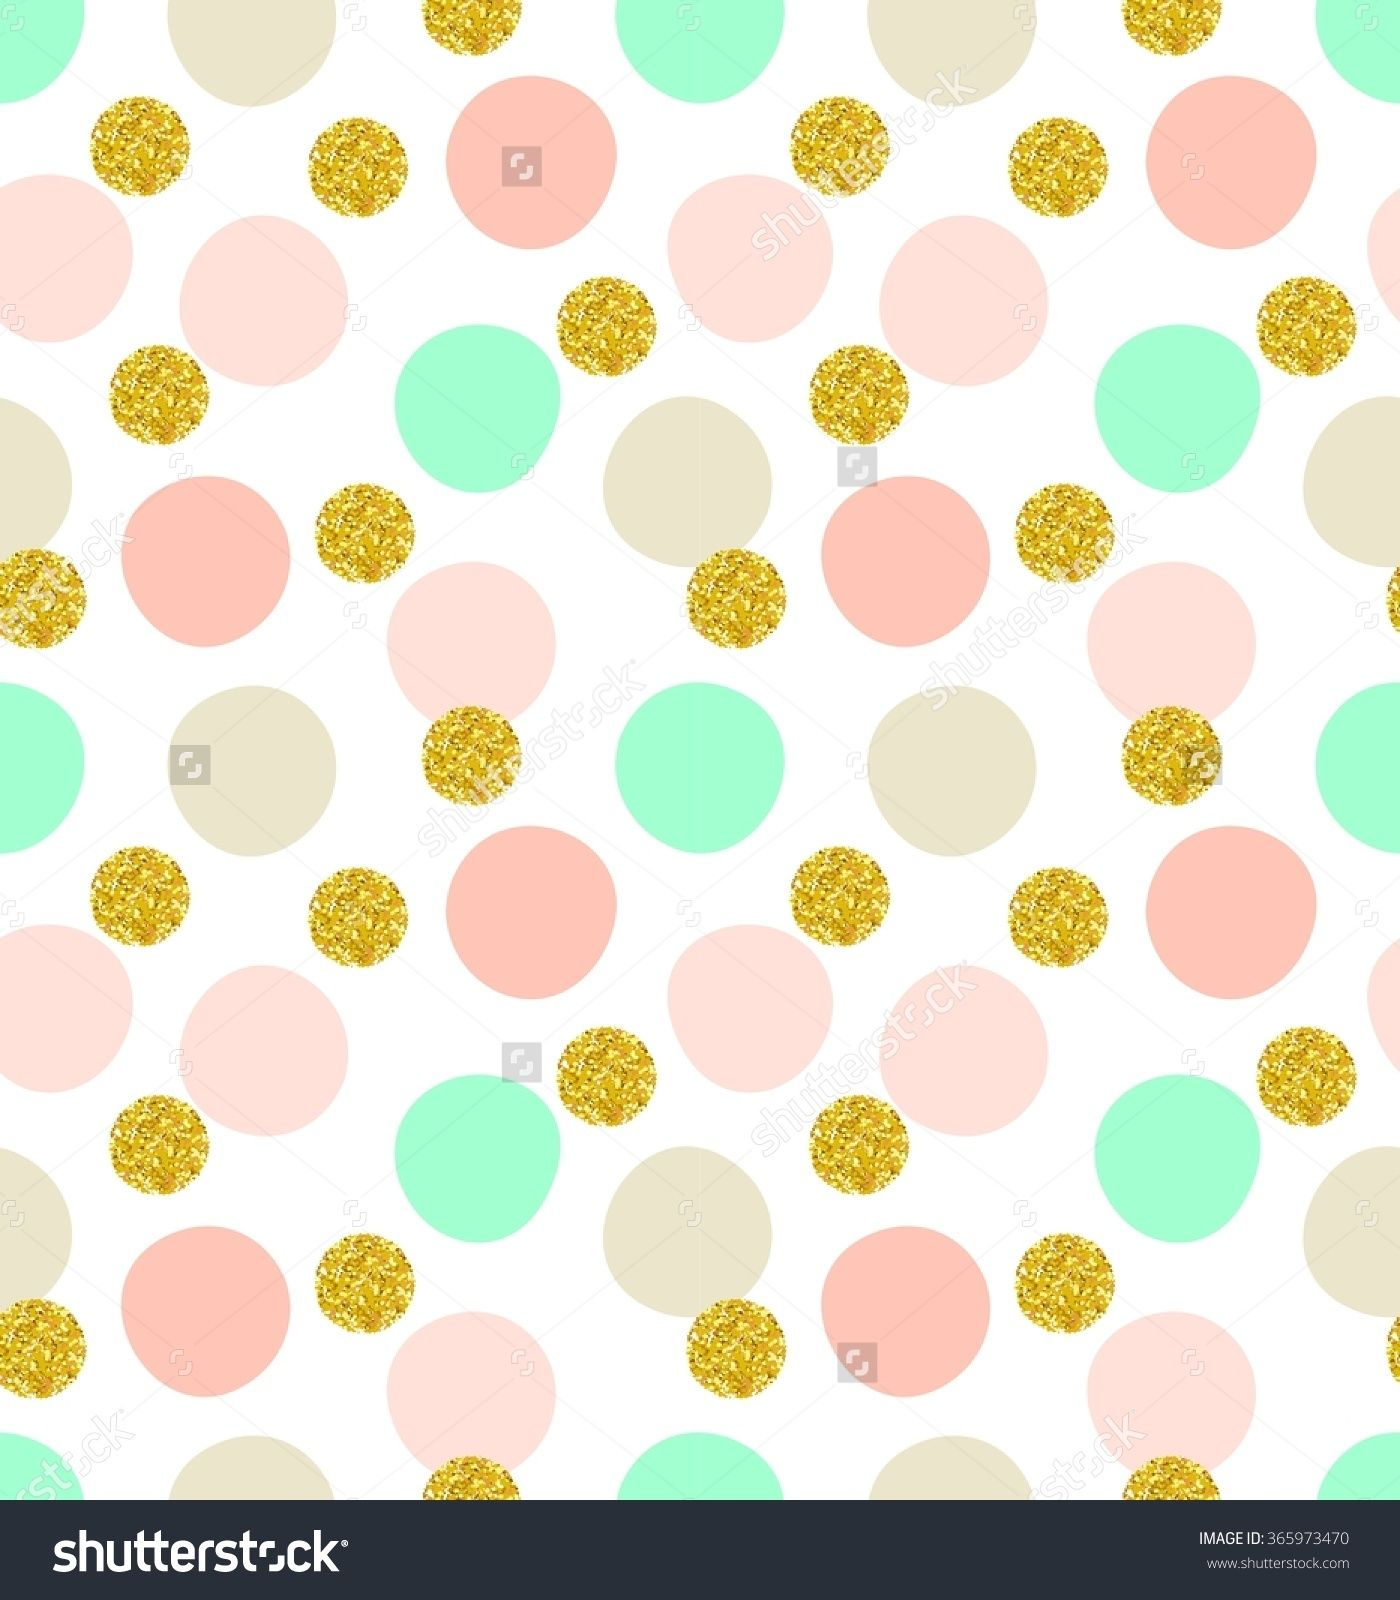 cute kids polka dot colorful seamless pattern with